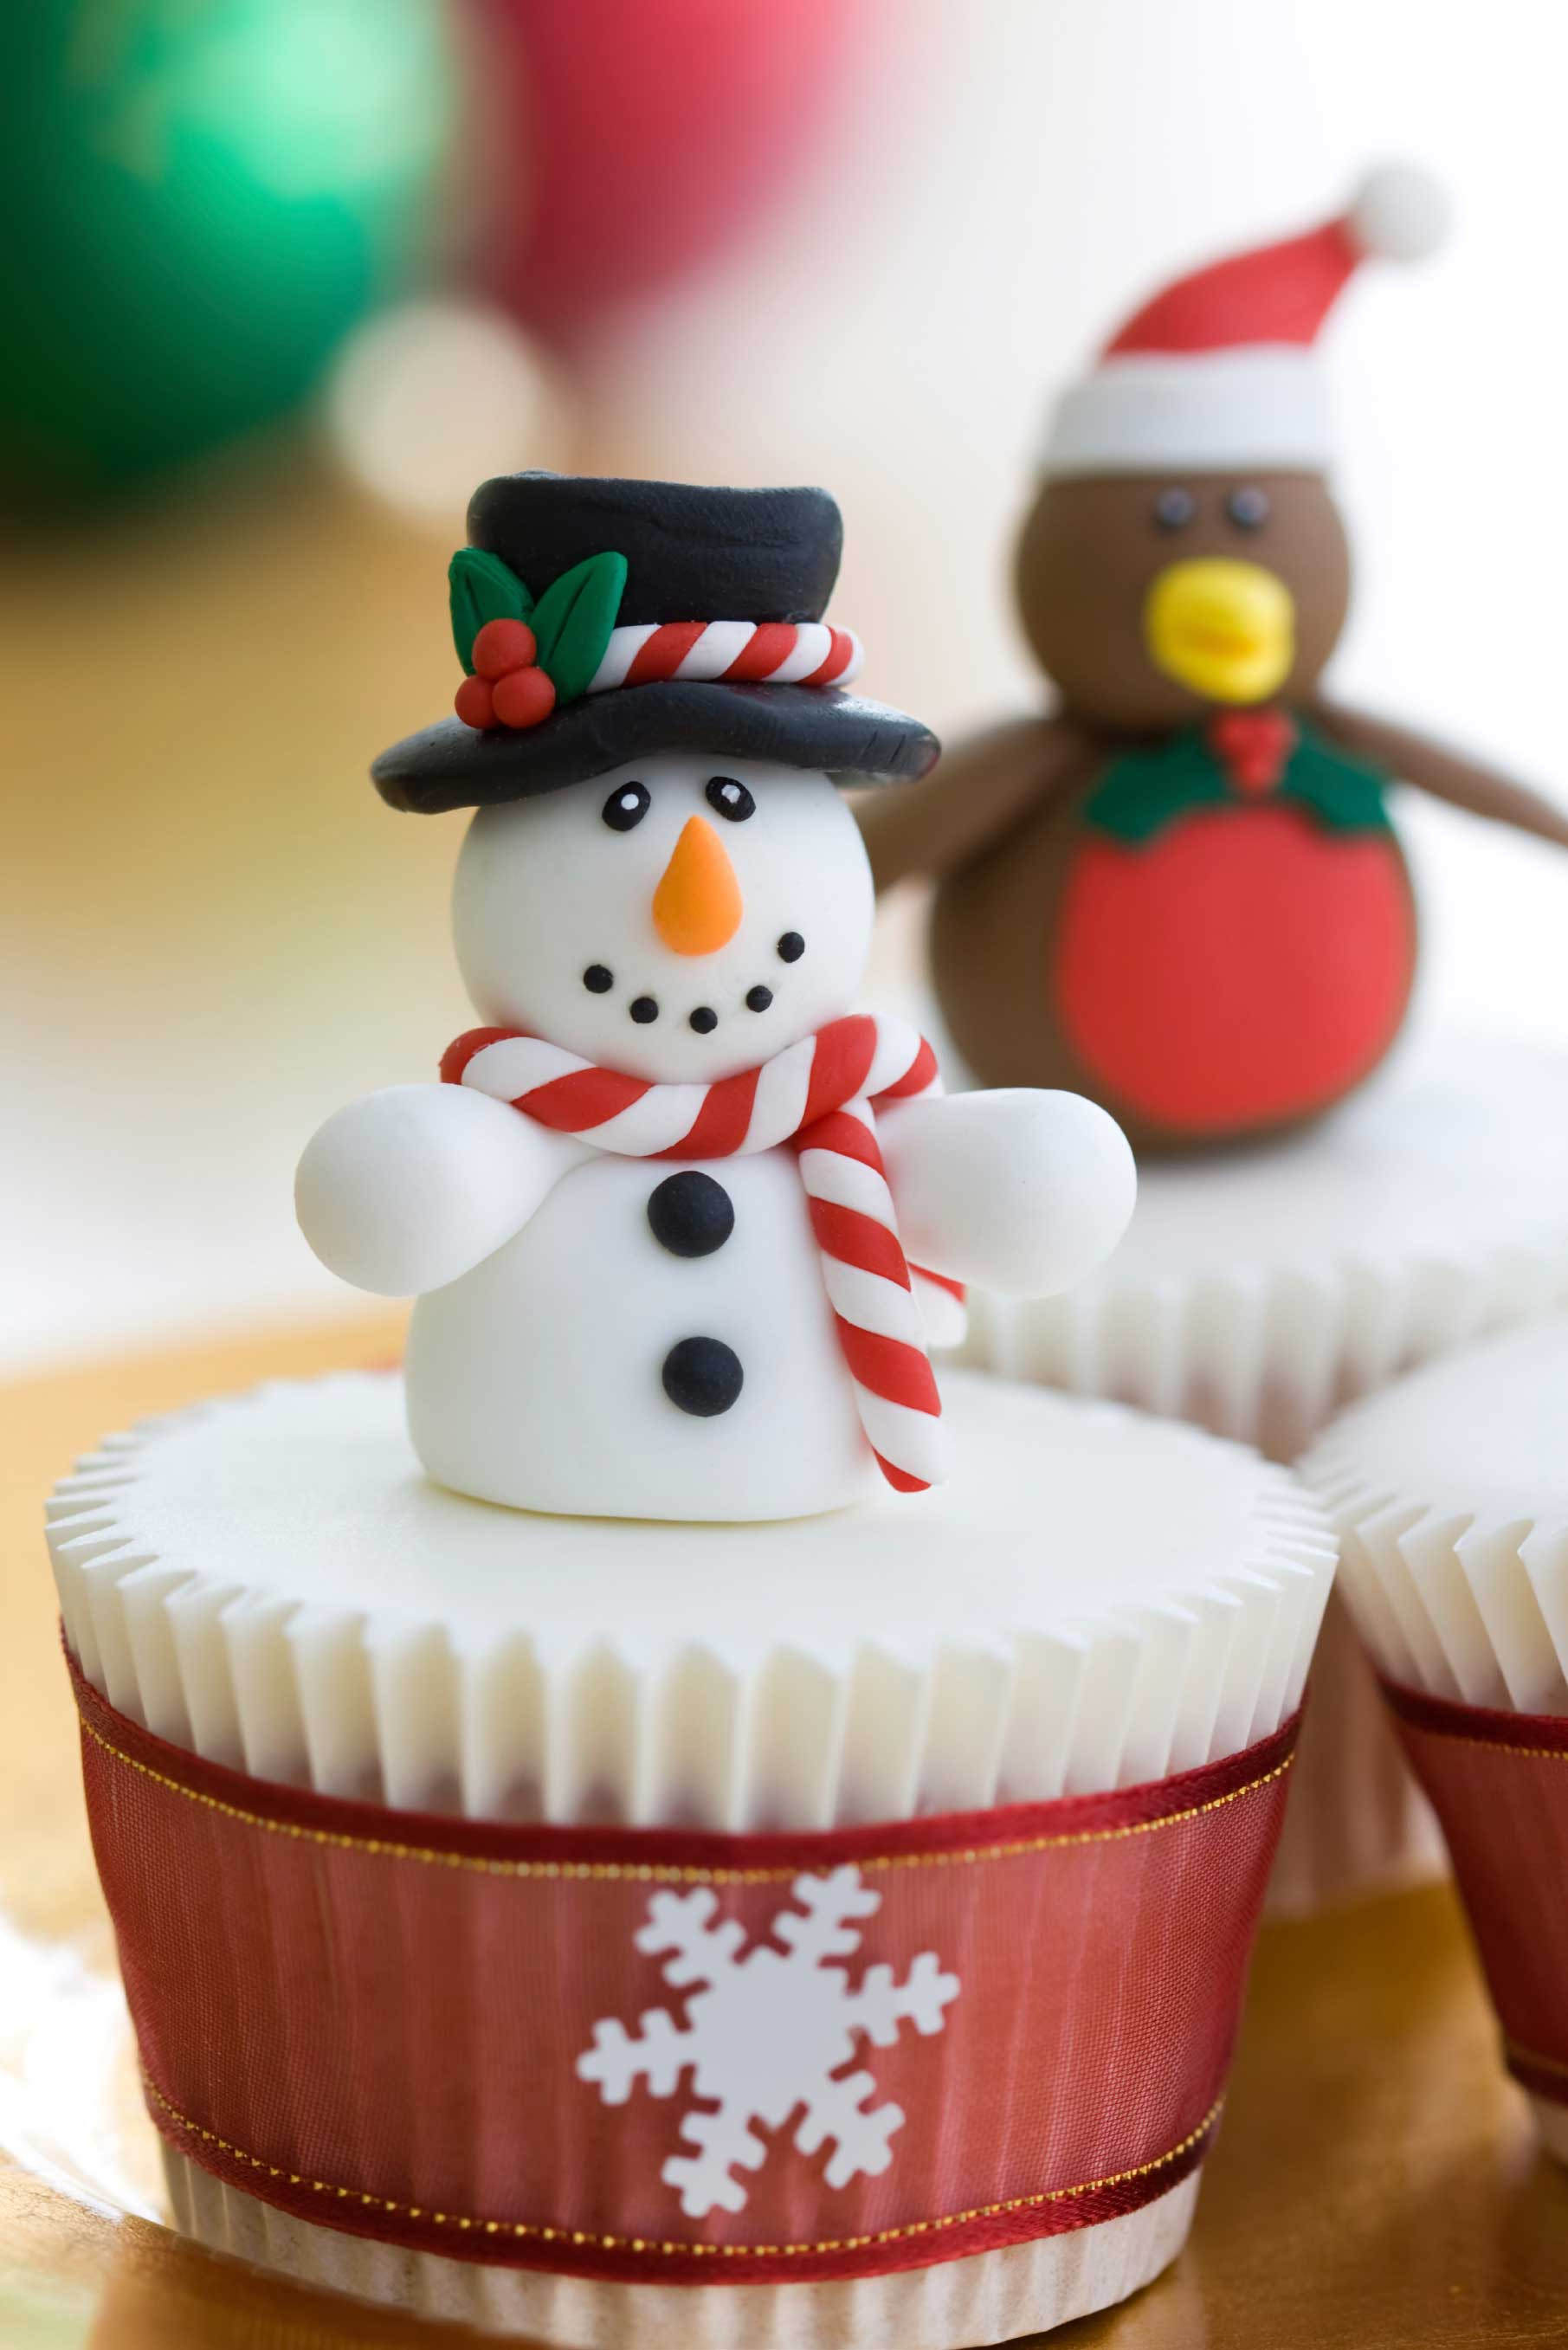 Christmas Cake And Cupcakes  Christmas Cakes & Baking Gallery Pink Frosting Party Ideas